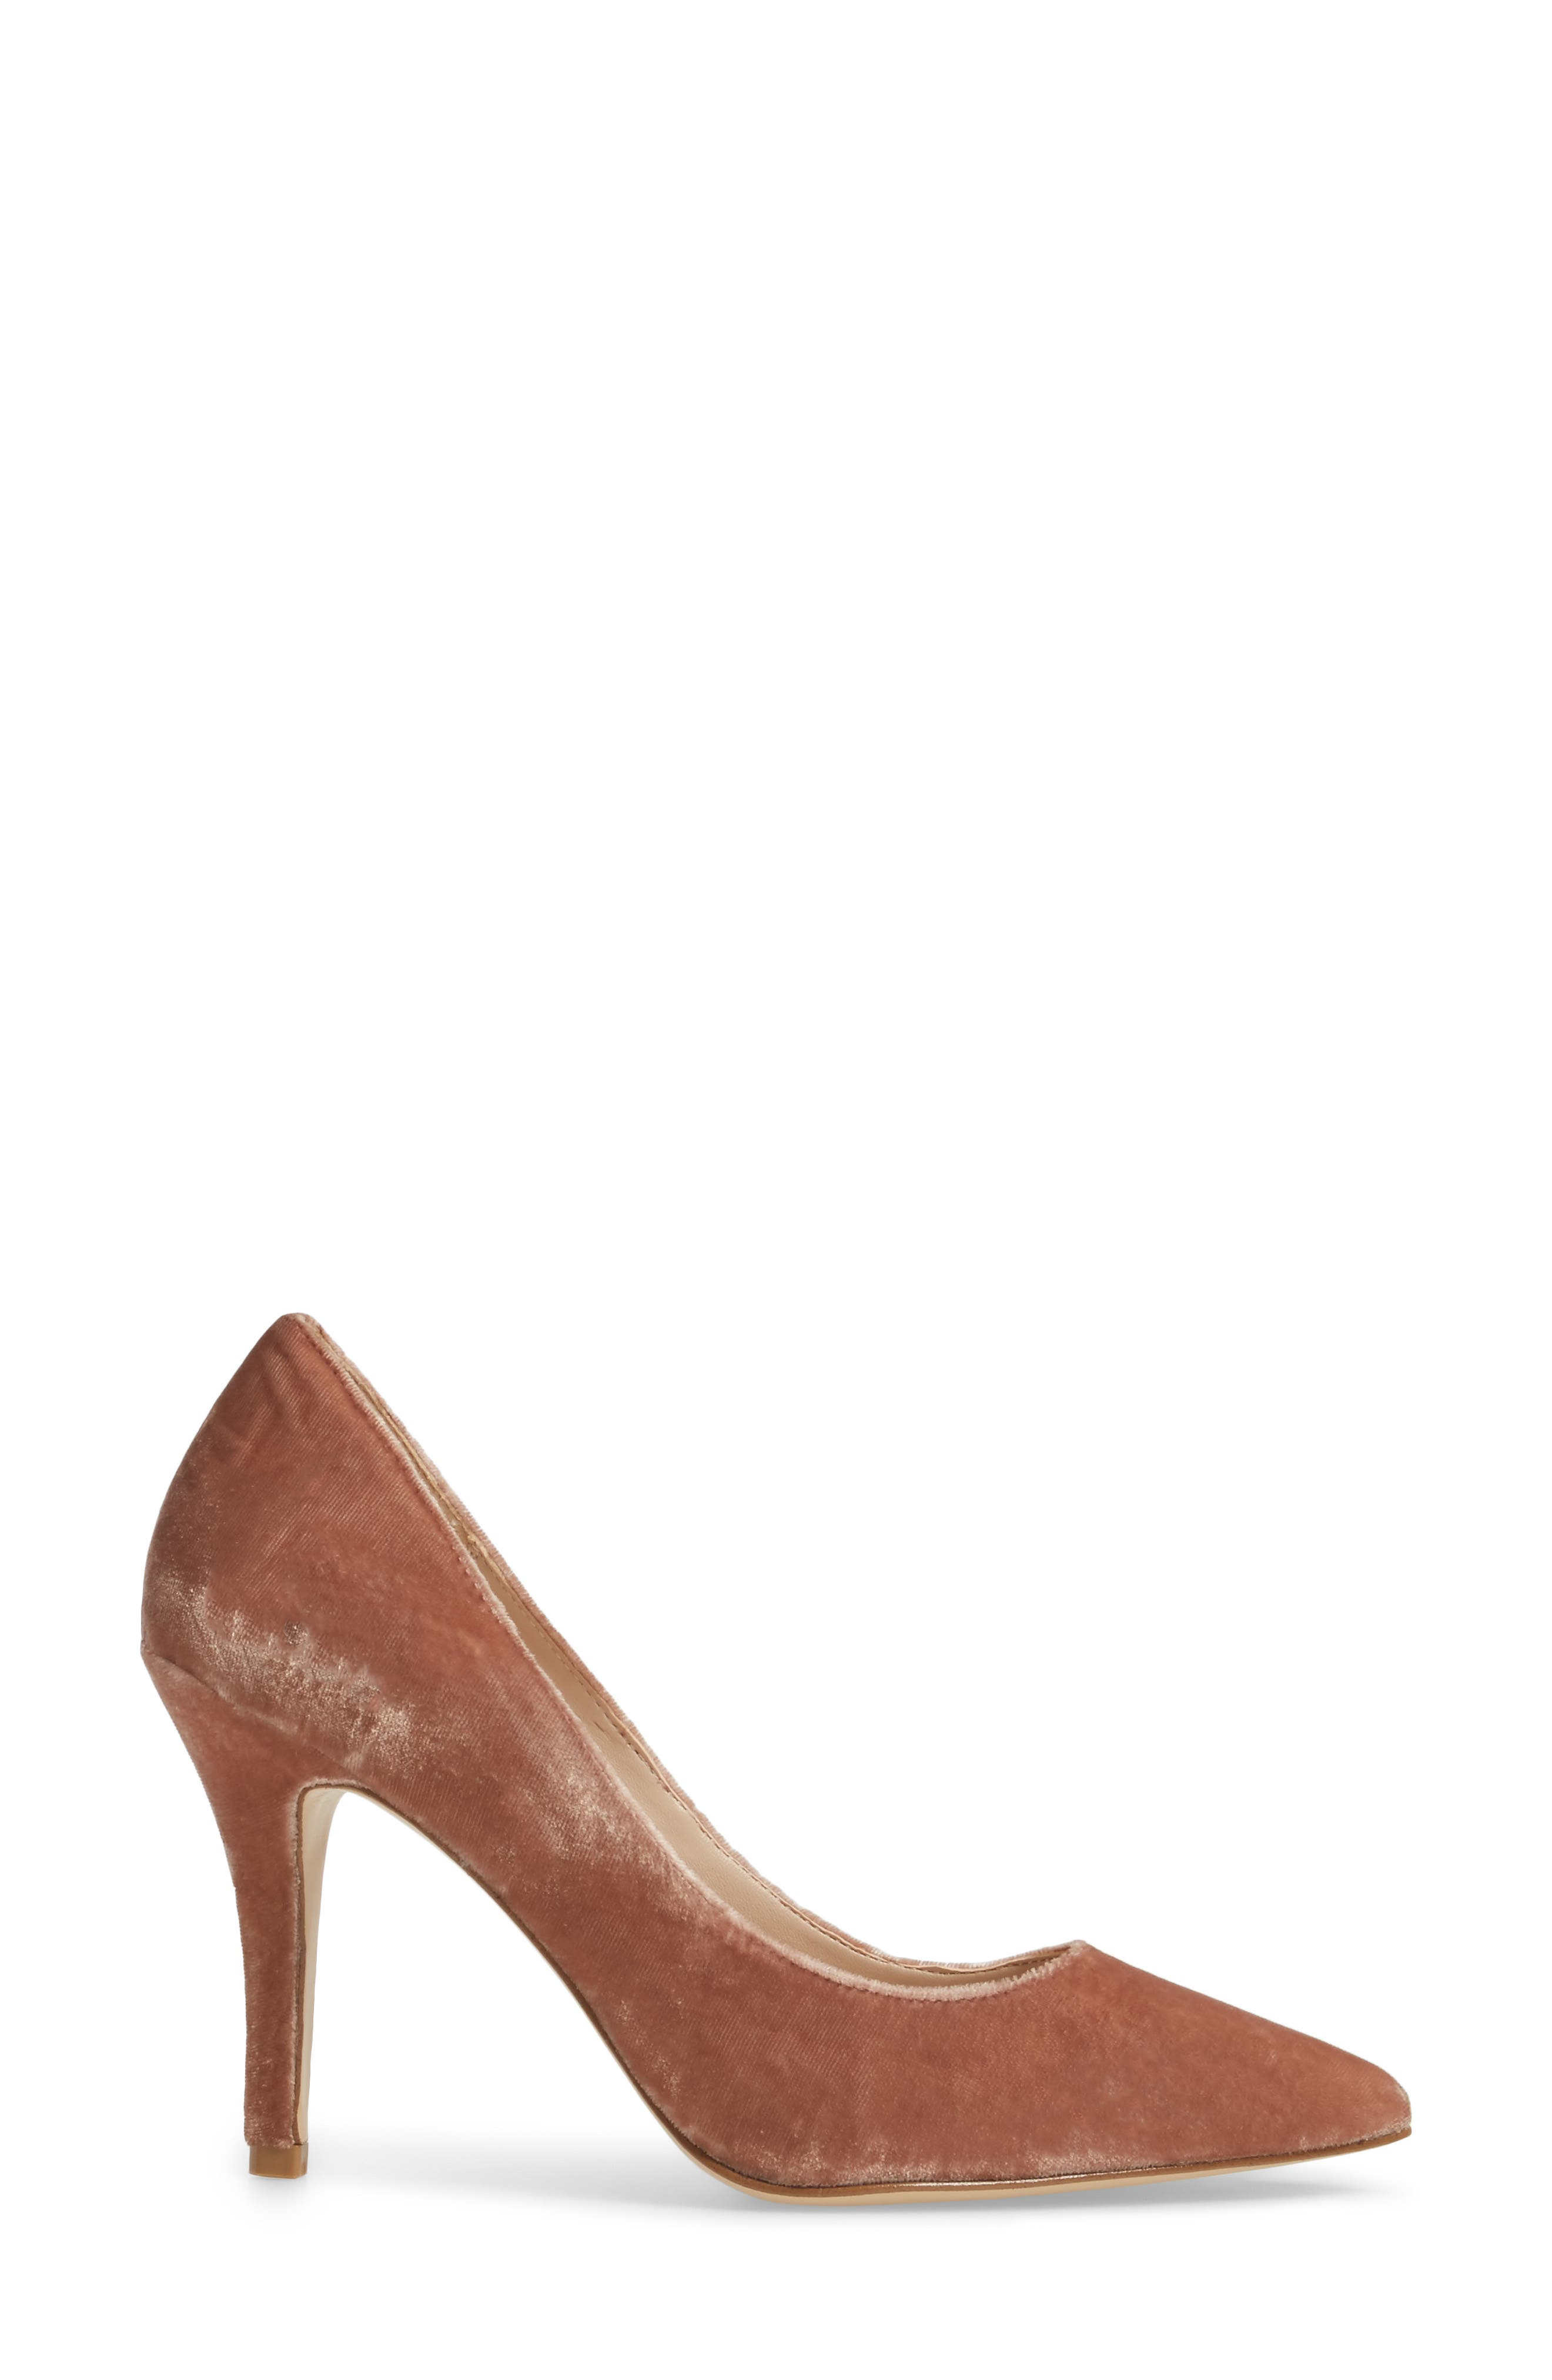 Vally2 Pointy Toe Pump,                             Alternate thumbnail 3, color,                             650